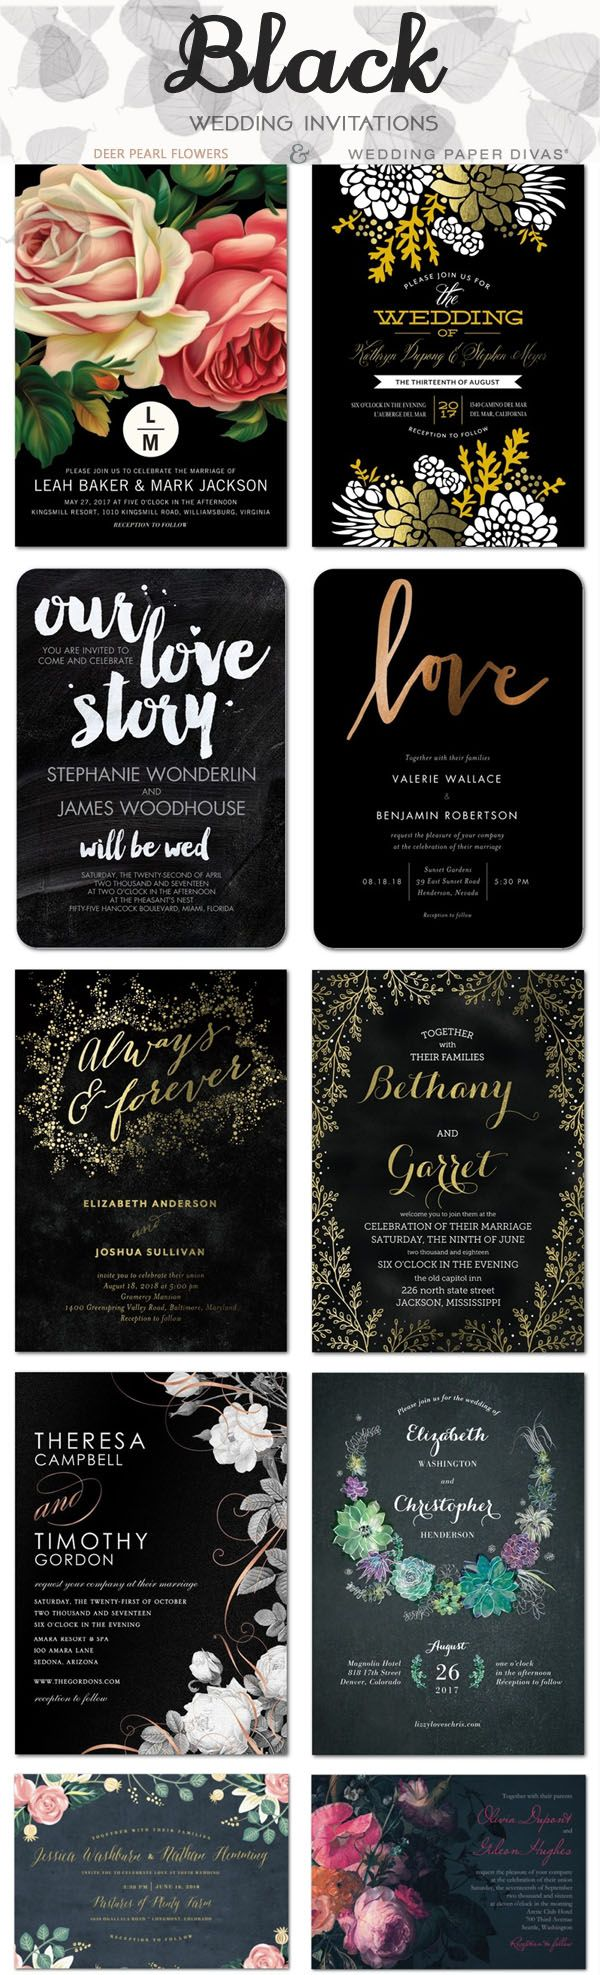 Black wedding color ideas - black wedding invitations / http://www.deerpearlflowers.com/wedding-paper-divas-wedding-invitations/2/